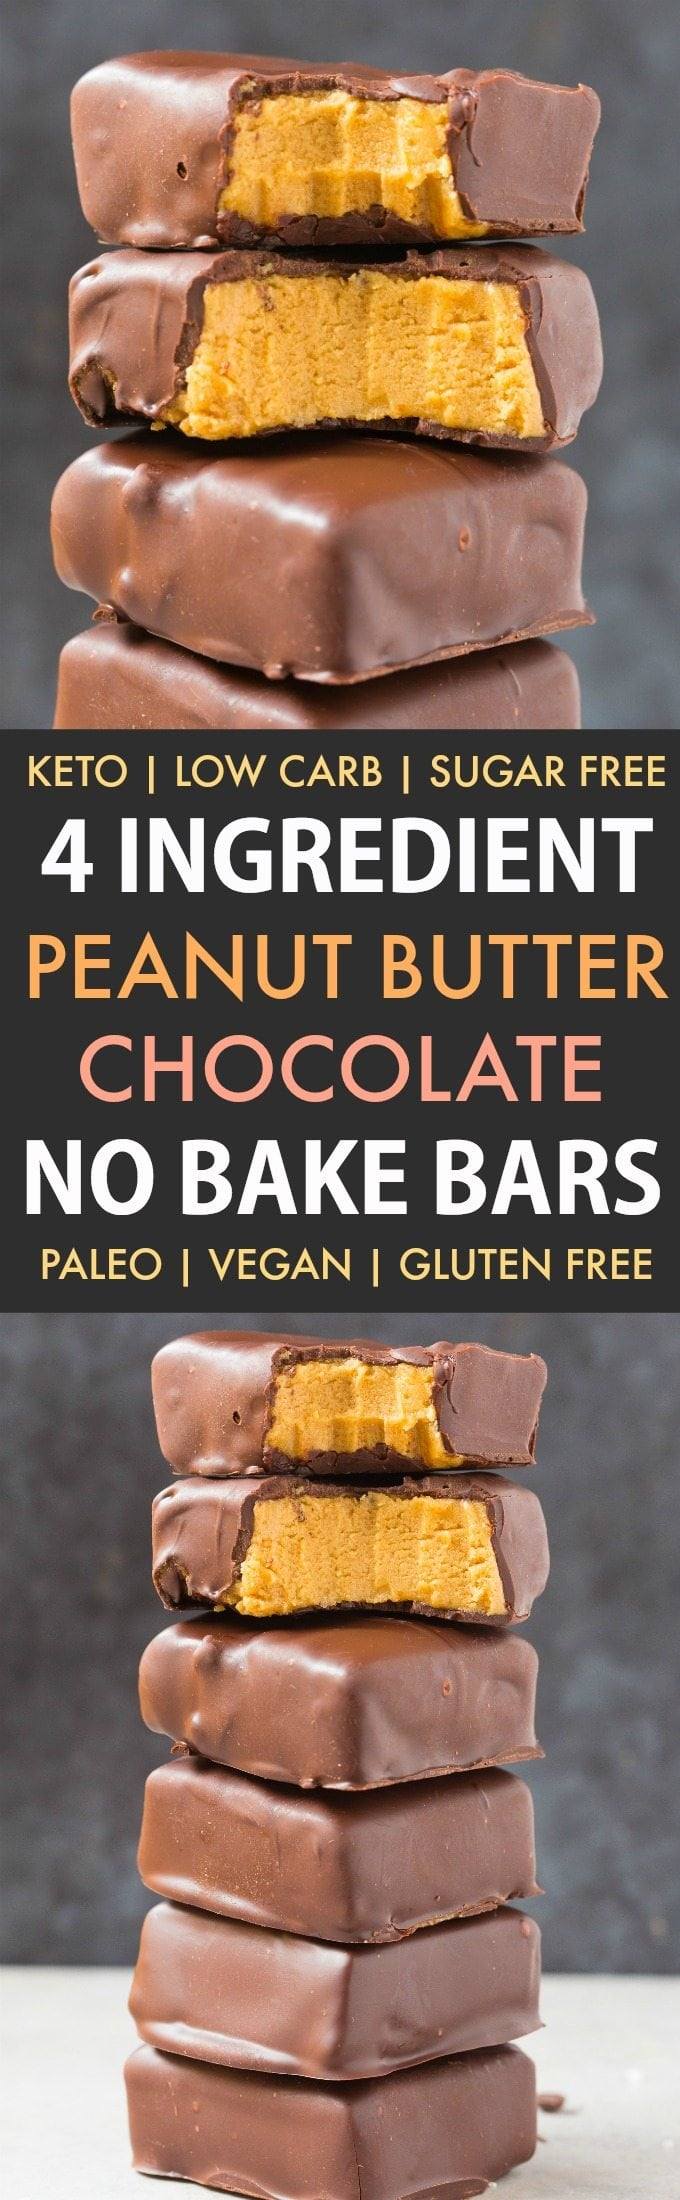 Healthy No Bake Peanut Butter Chocolate Bars in a collage